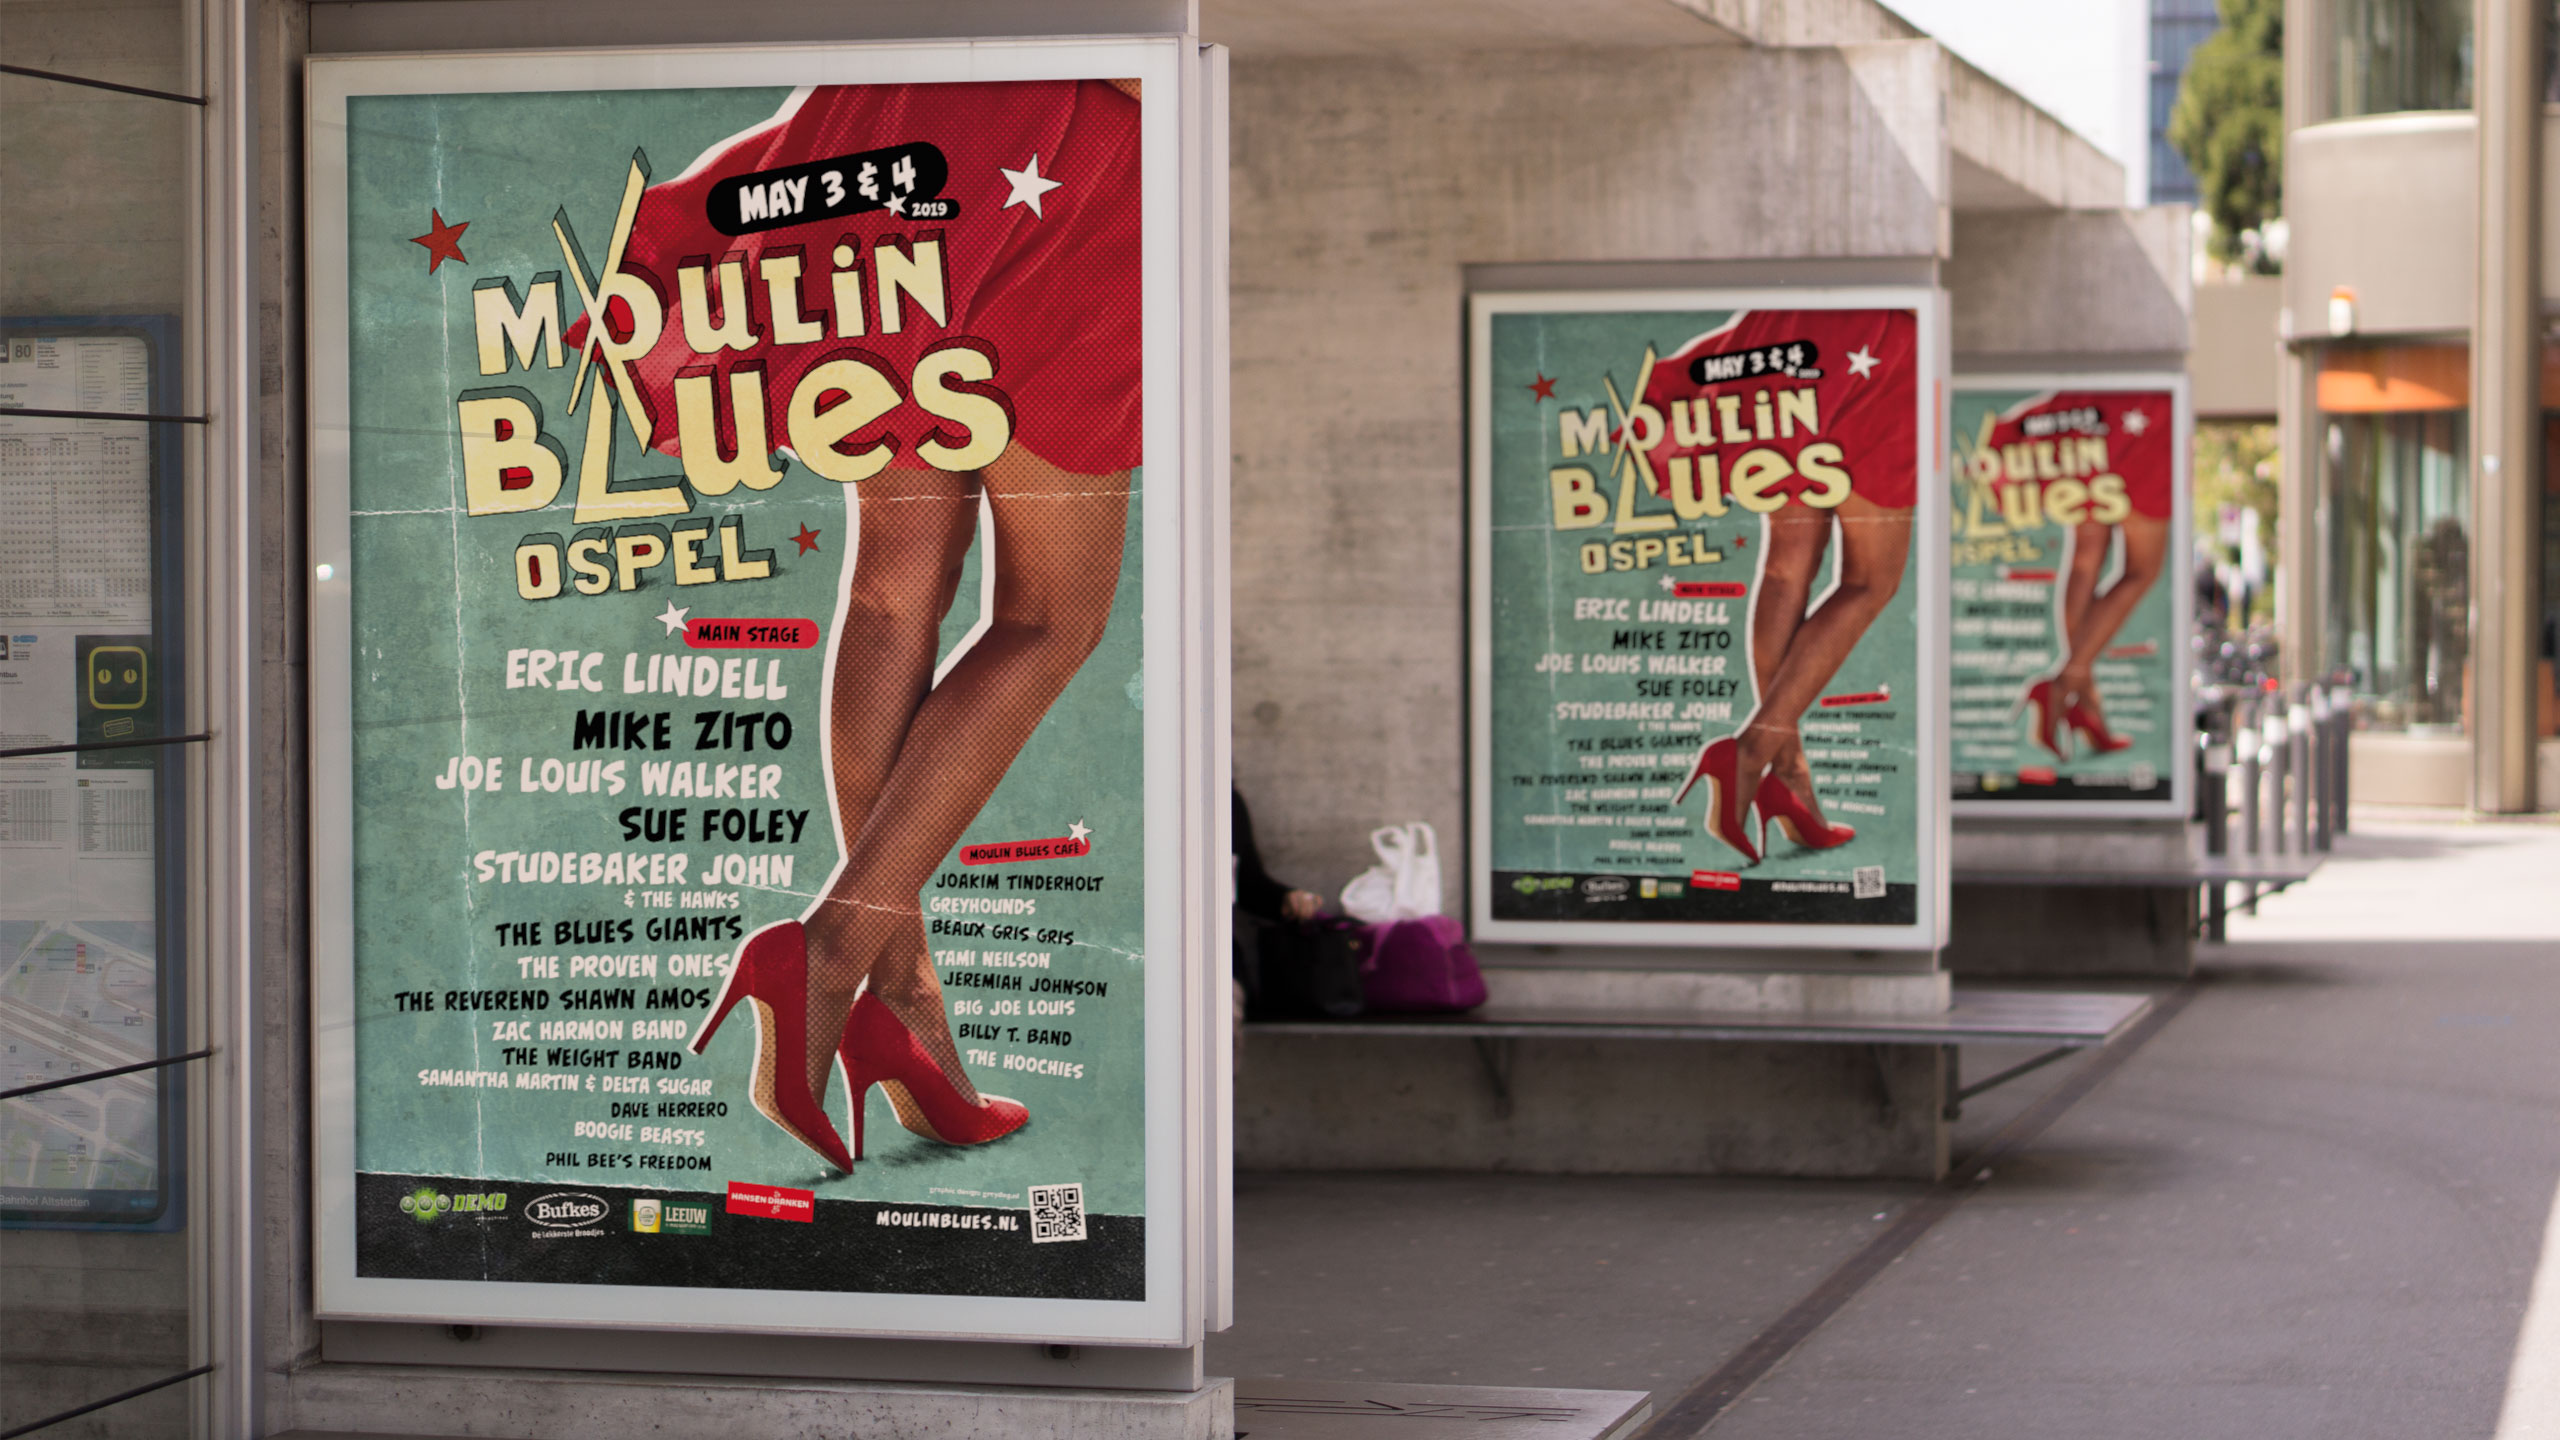 Moulin Blues Poster 2019 op treinstation